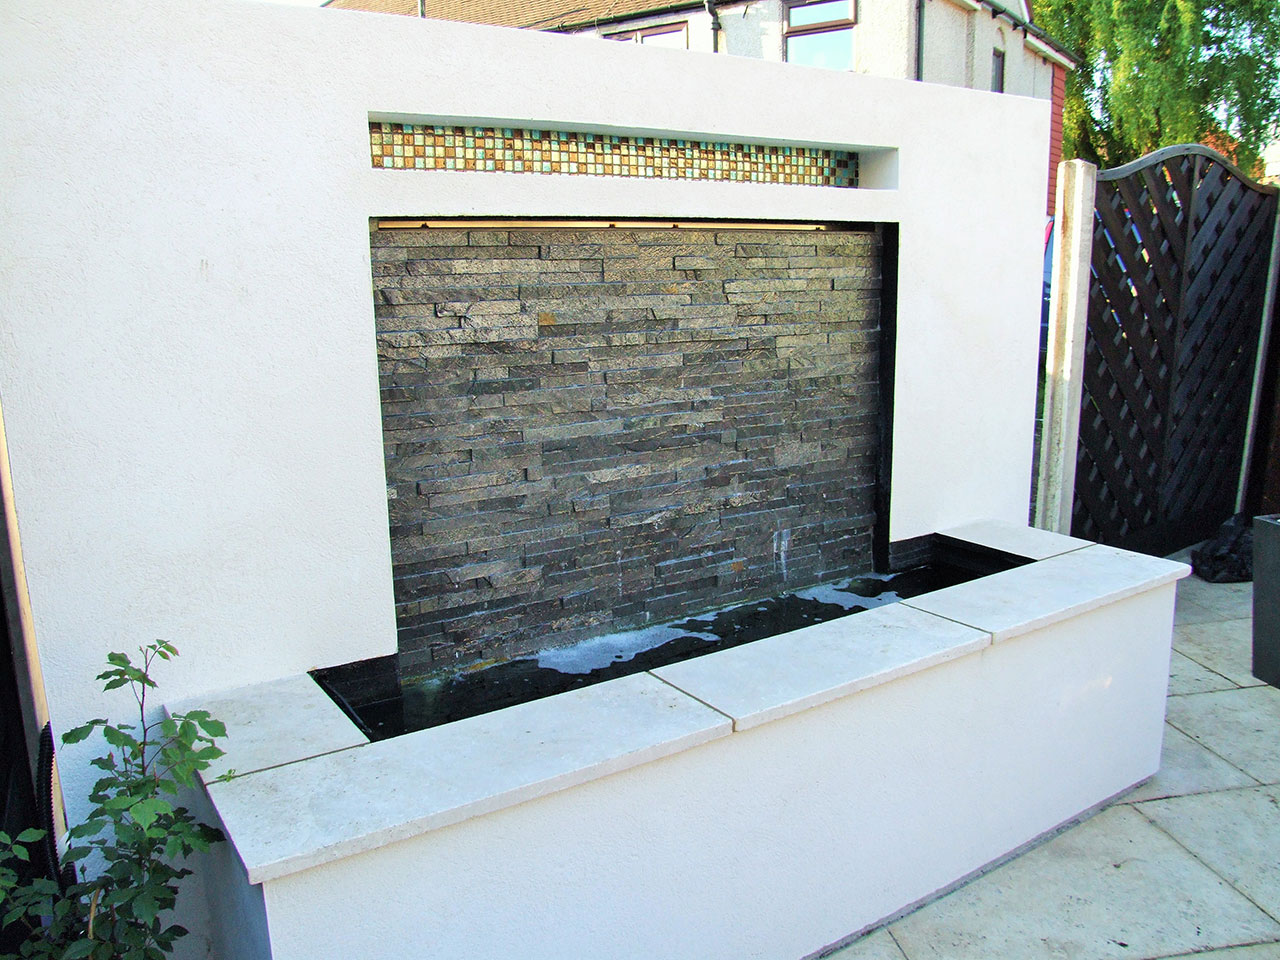 landcaping-kent-water-feature-rendered-plastered-walling-landscapers-landscape-gardening